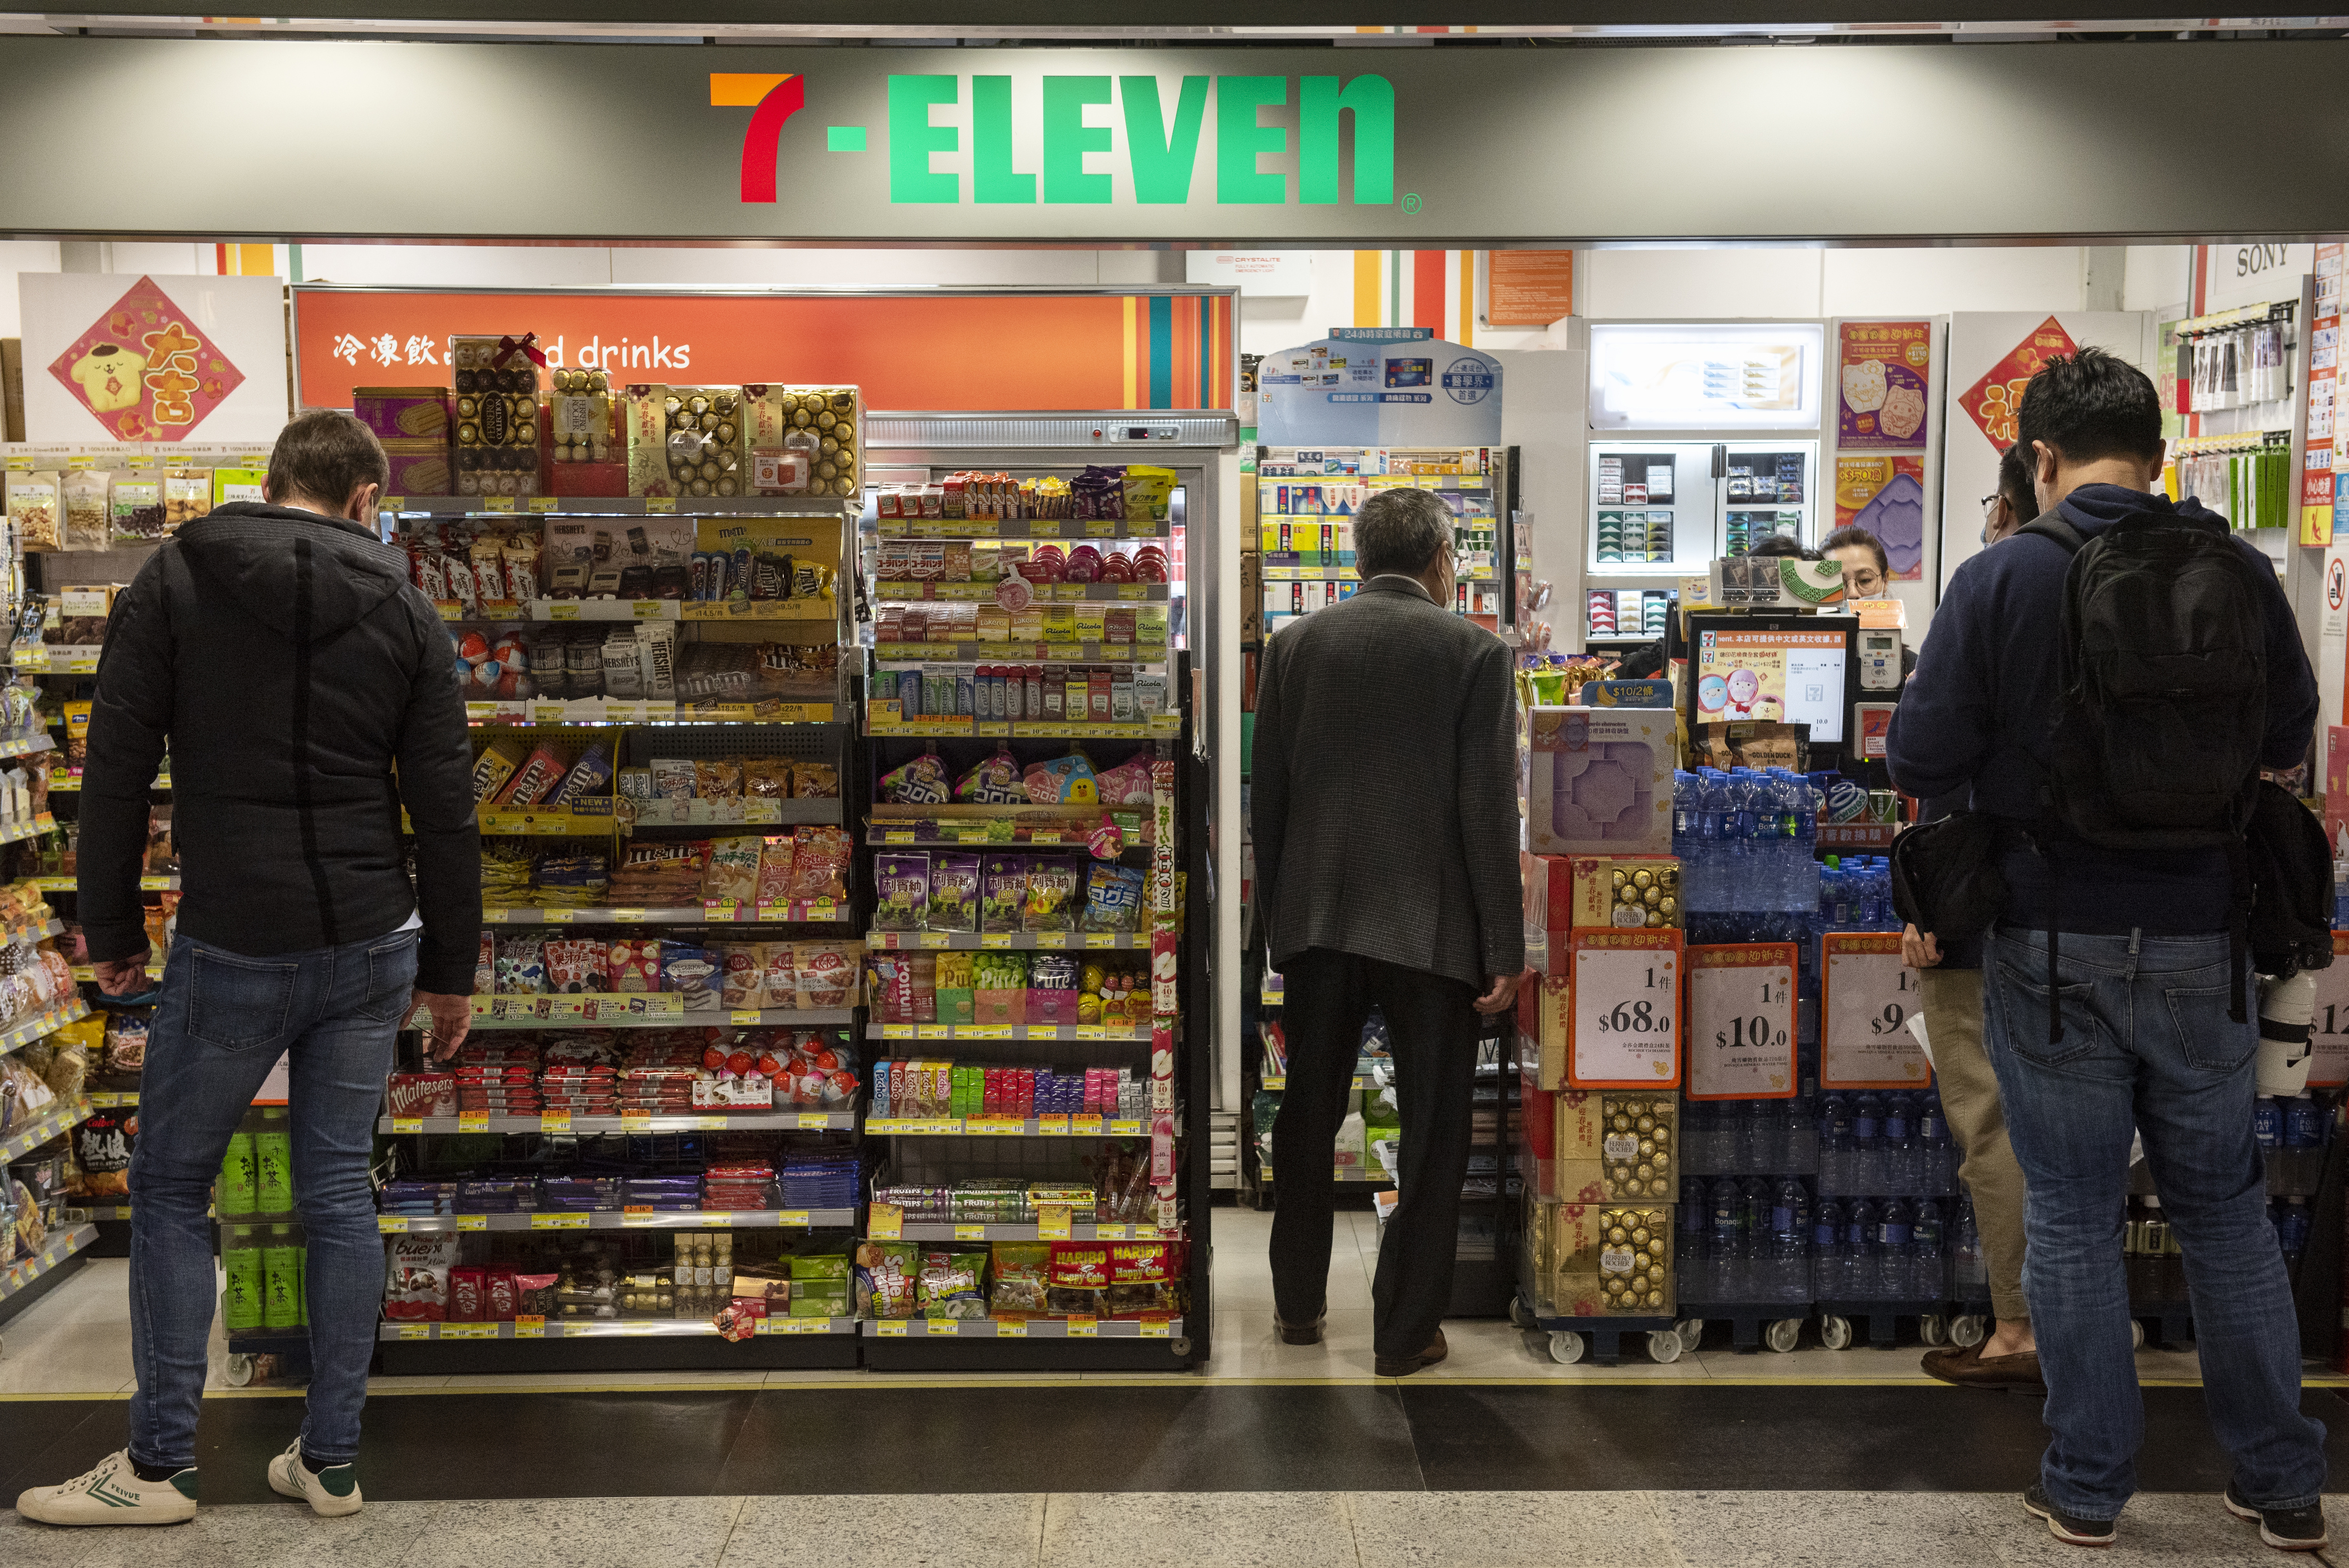 A 7-Eleven store in Hong Kong.